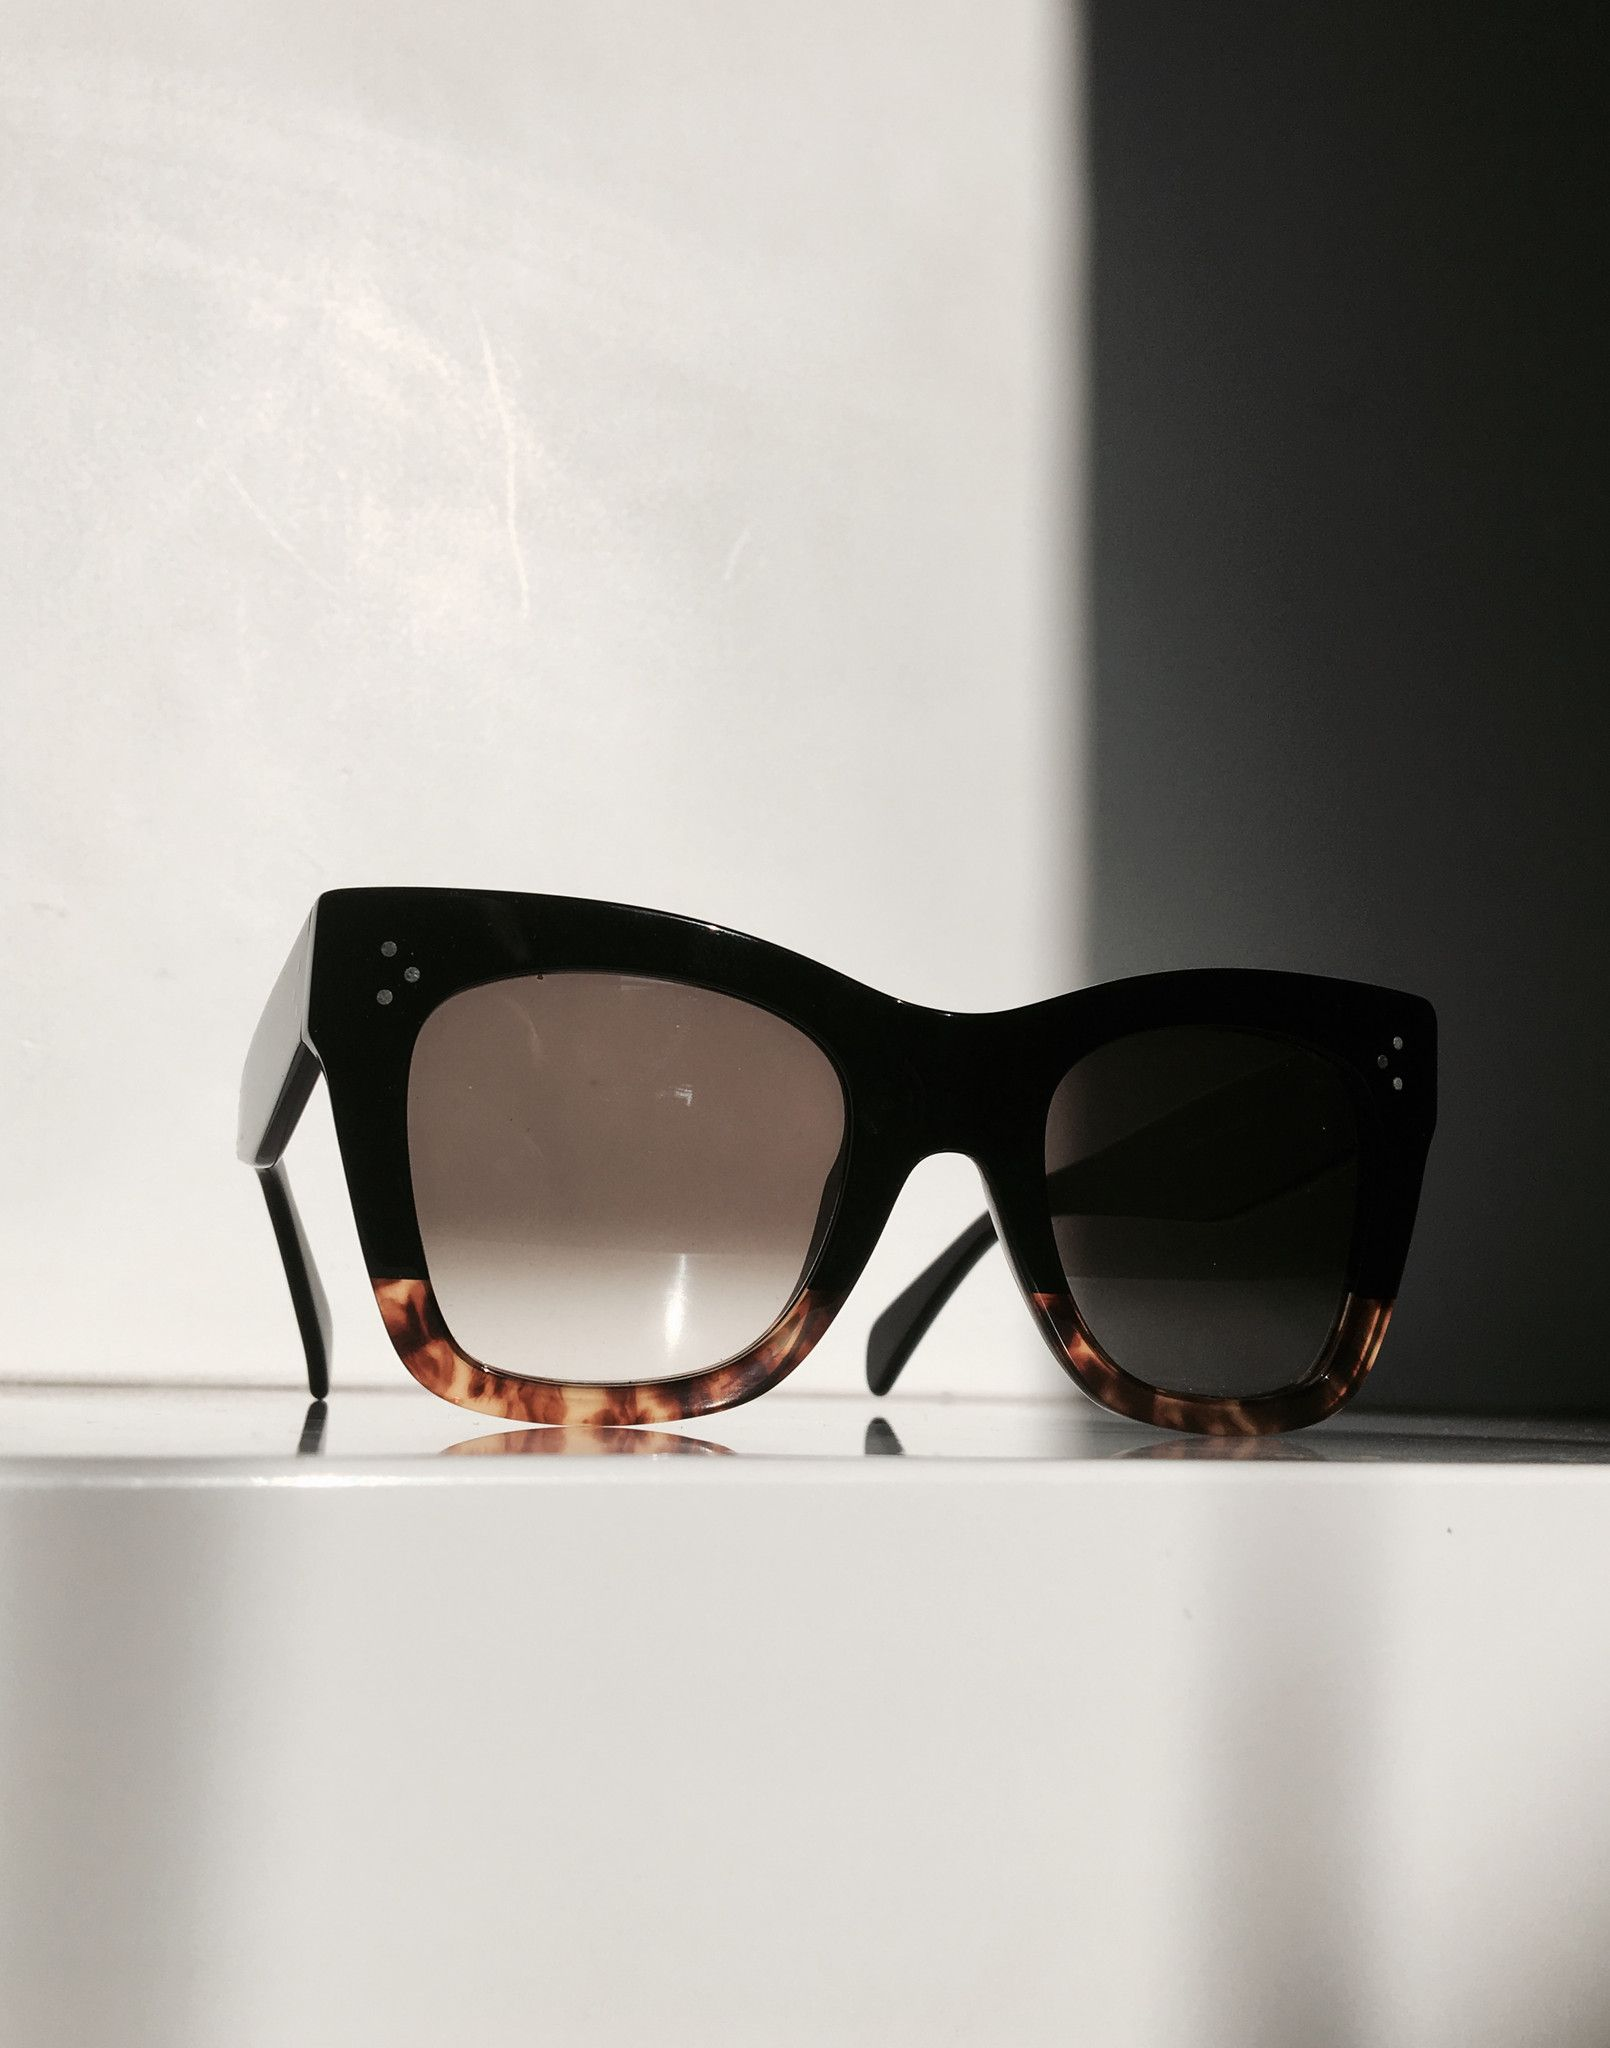 Sunglasses outlet  9 on   Fashion trends   Pinterest   Sunglasses ... e0818ad18c